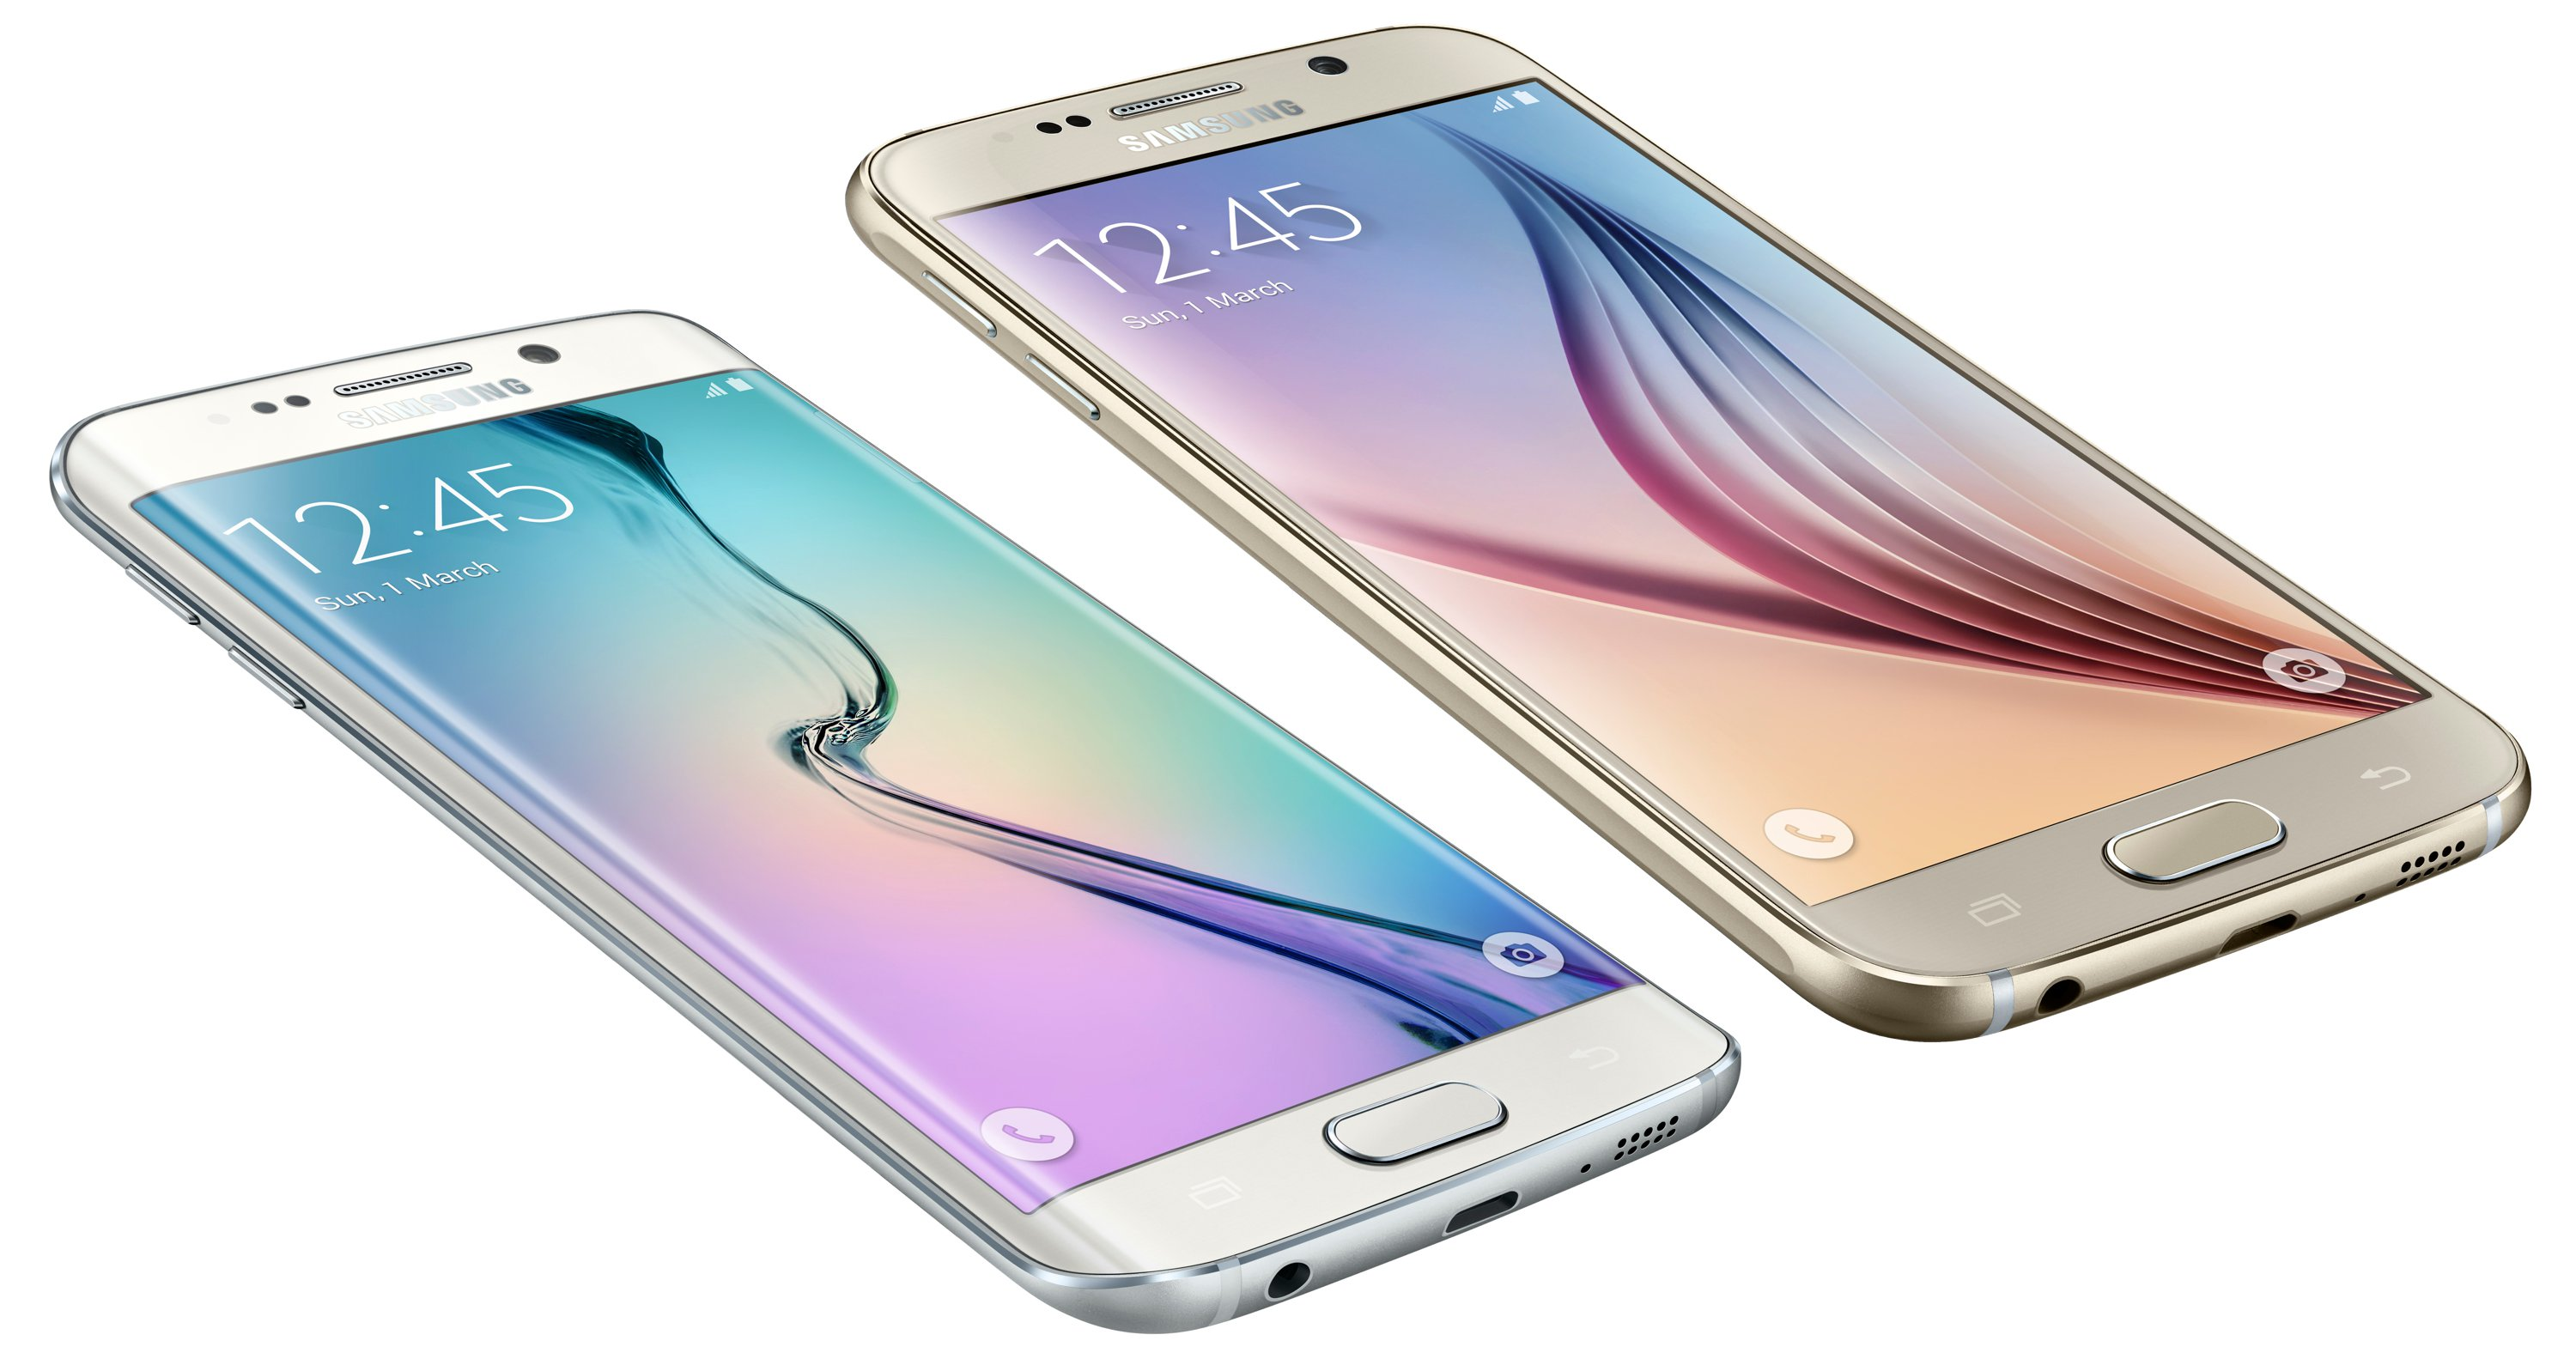 Samsung Galaxy S6 And S6 Edge Pre-Orders Now Open In UK, Pricing Revealed